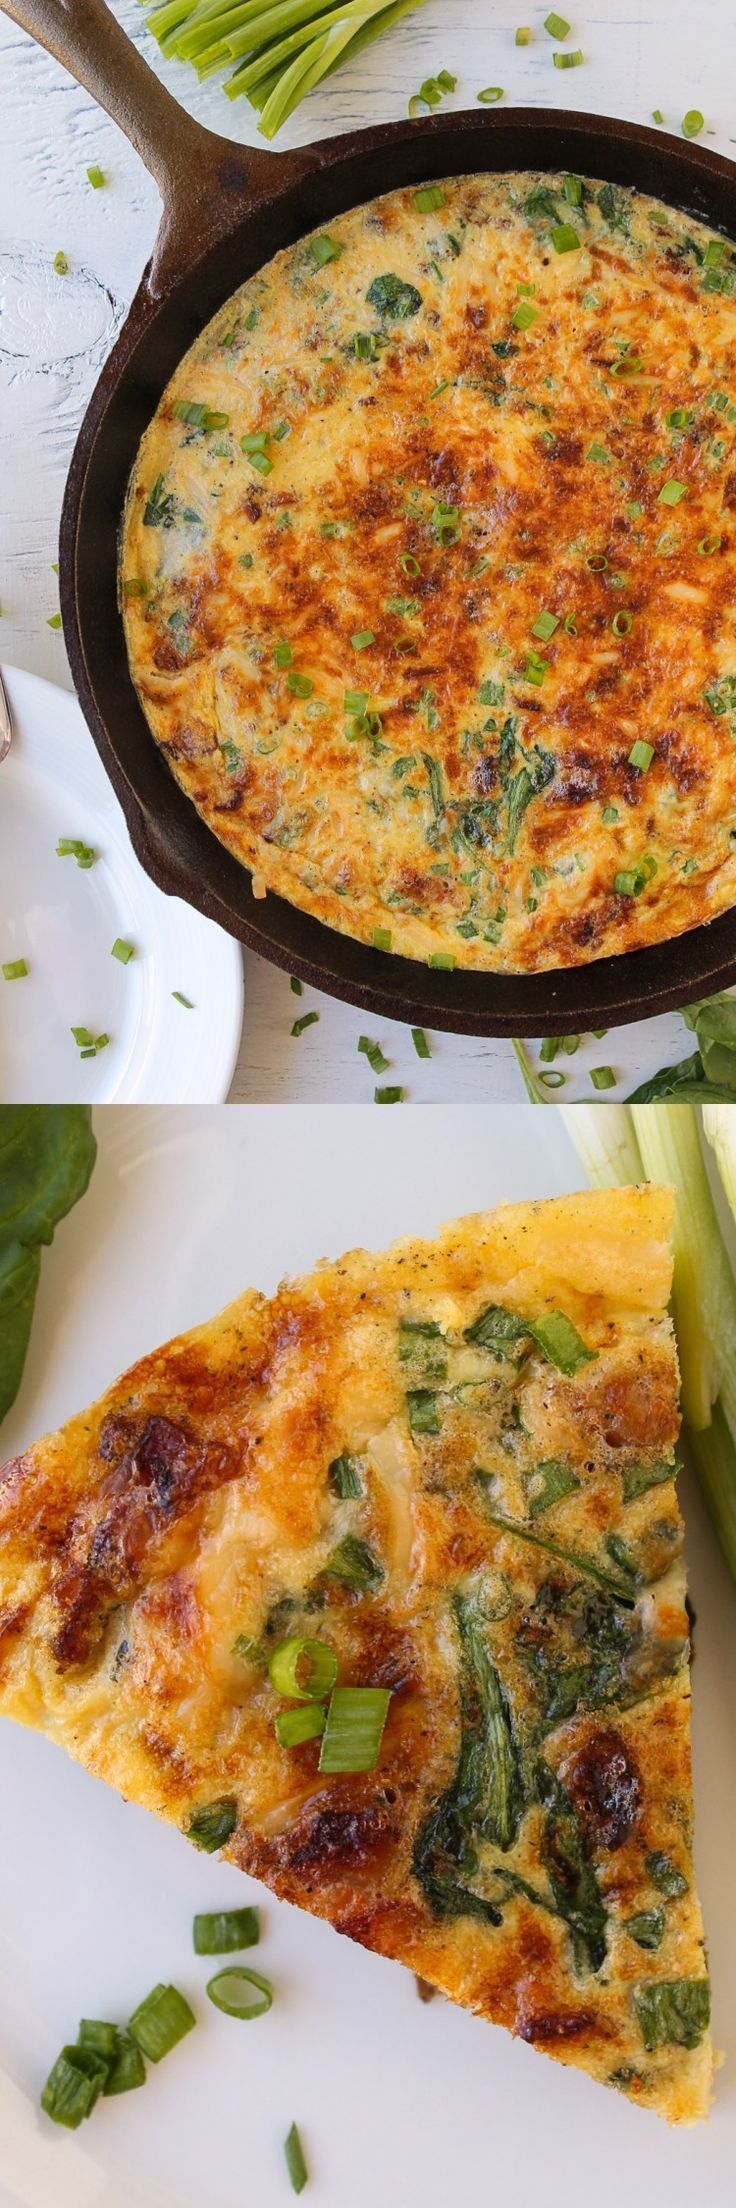 Bacon, Gouda, and Spinach Frittata